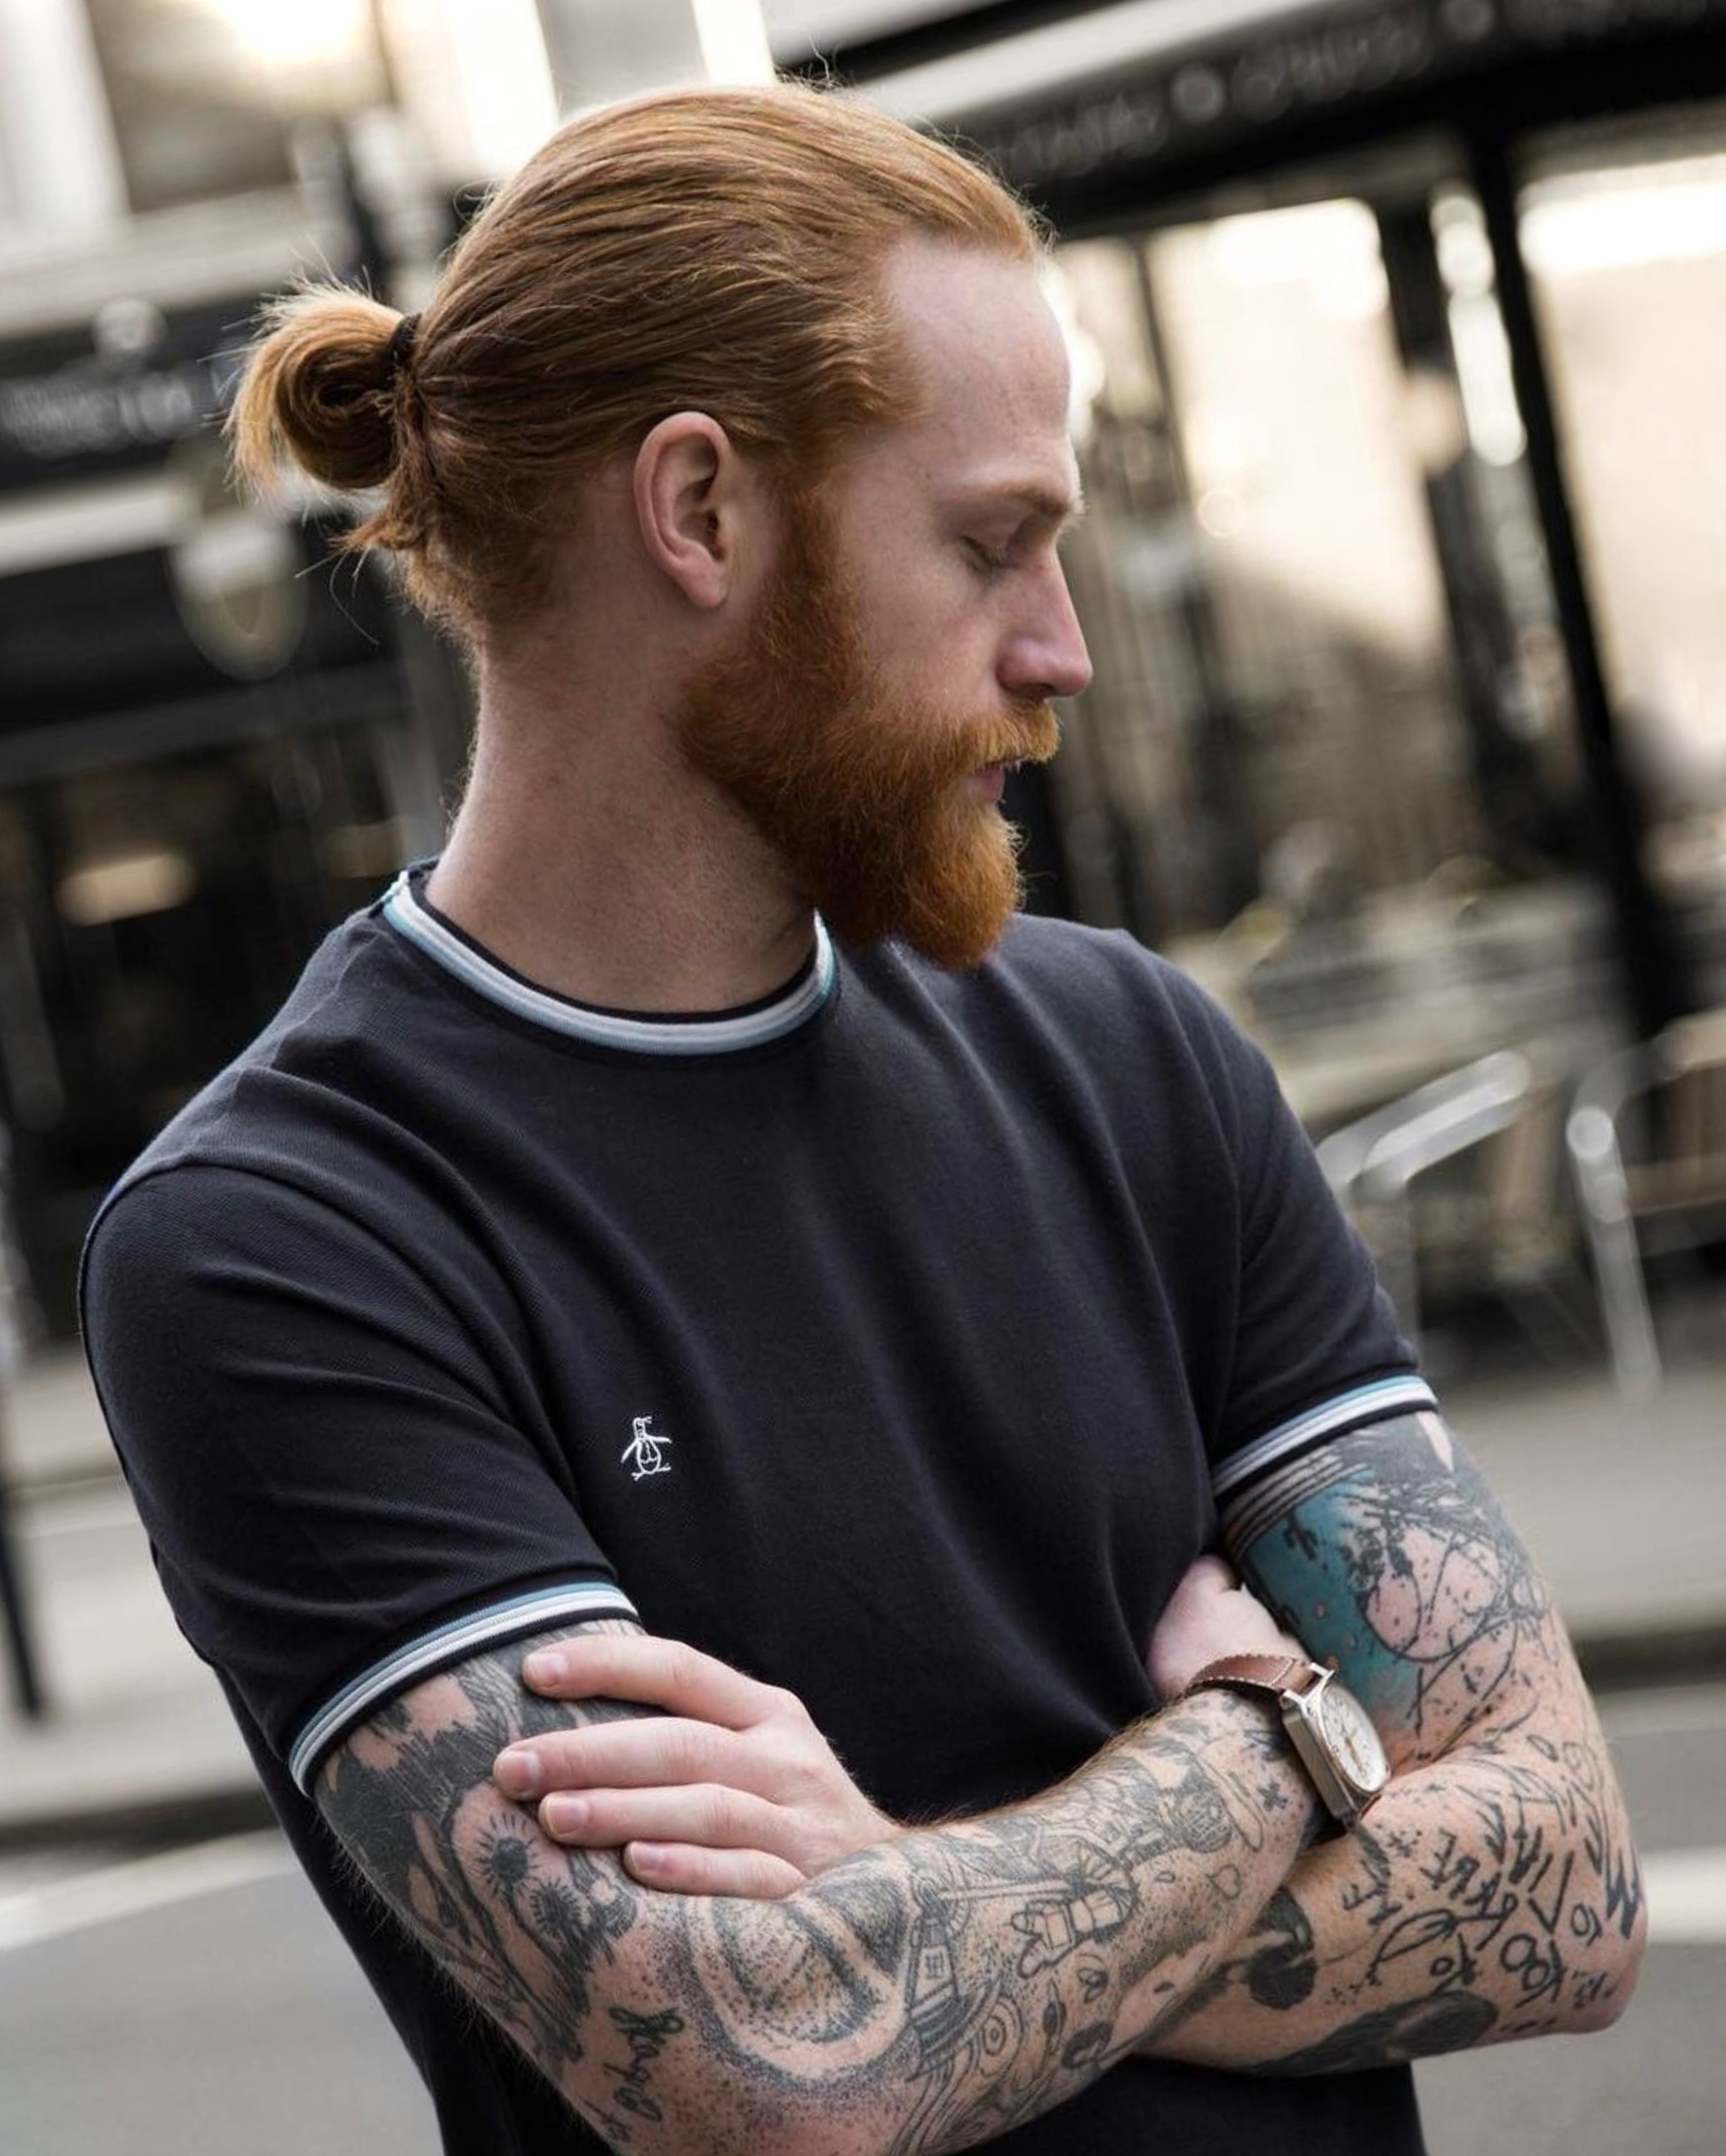 A male bun hairstyle for ginger hair.